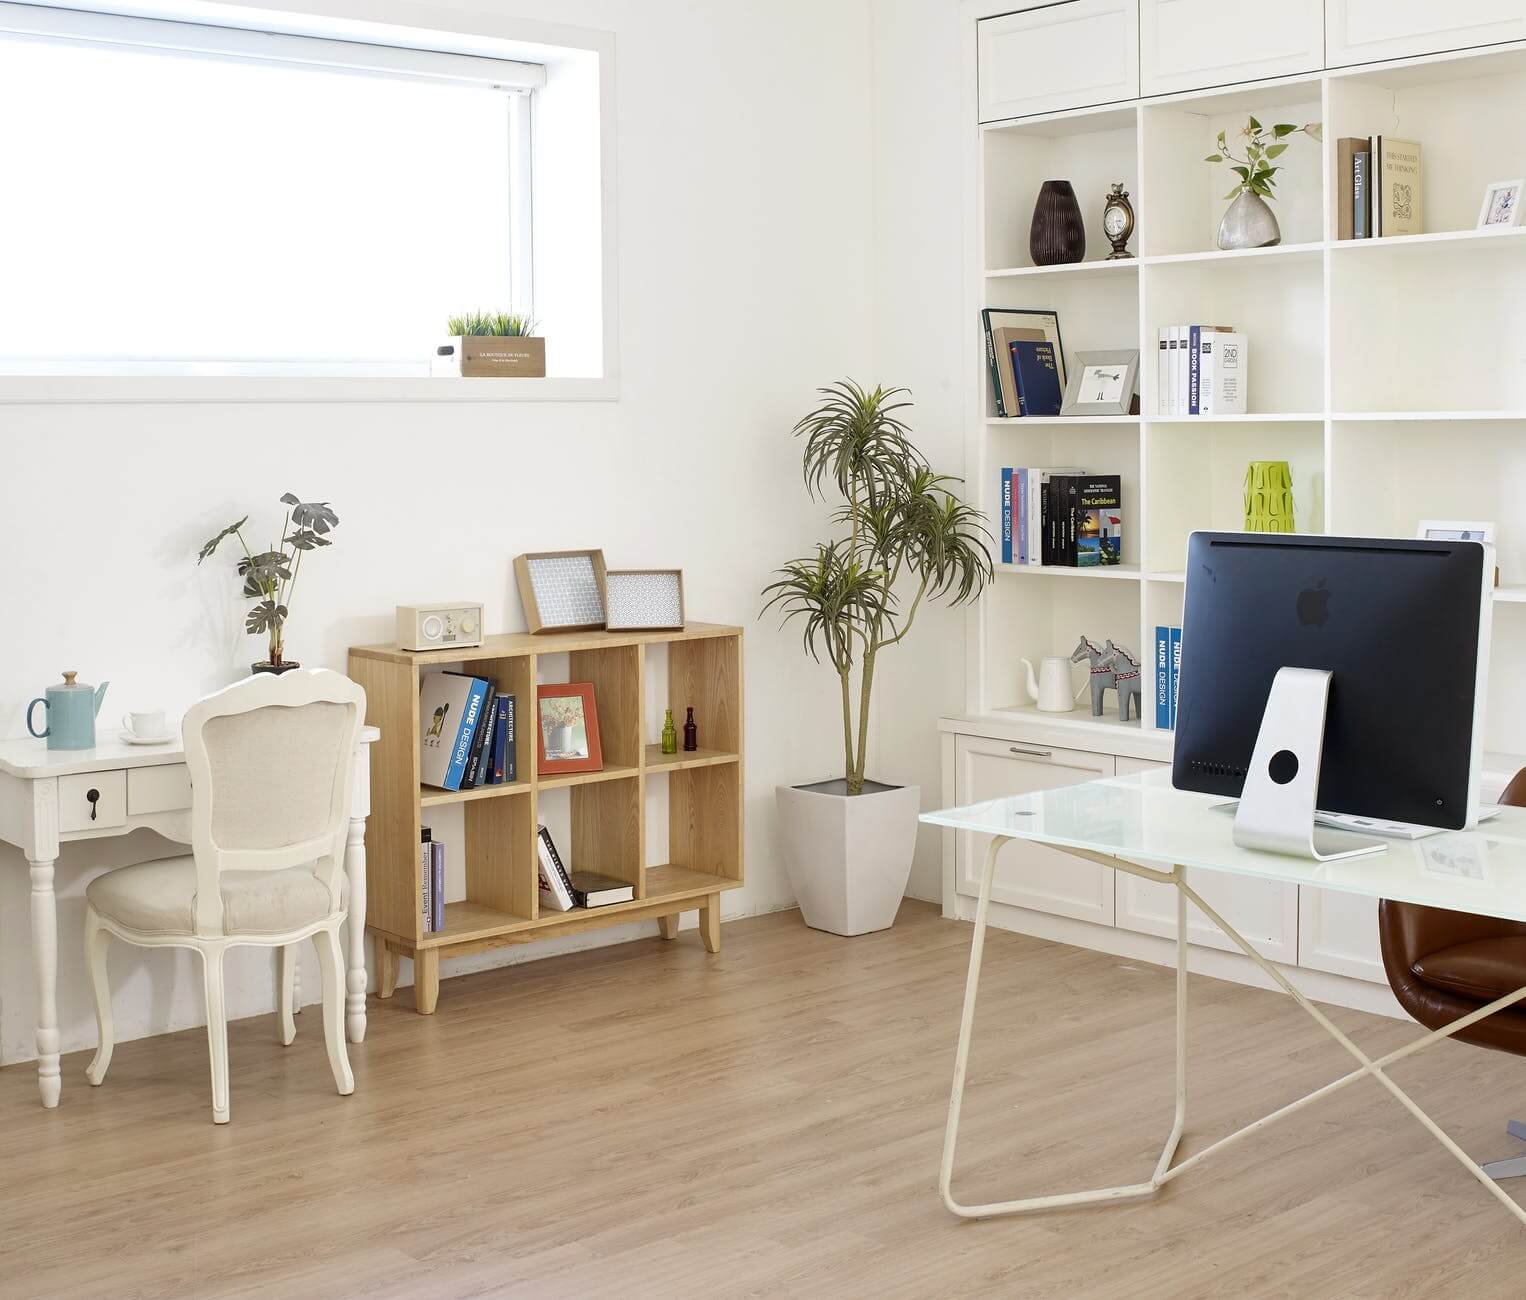 6 Modern and Chic Home Office Ideas You Should Try - KUKUN